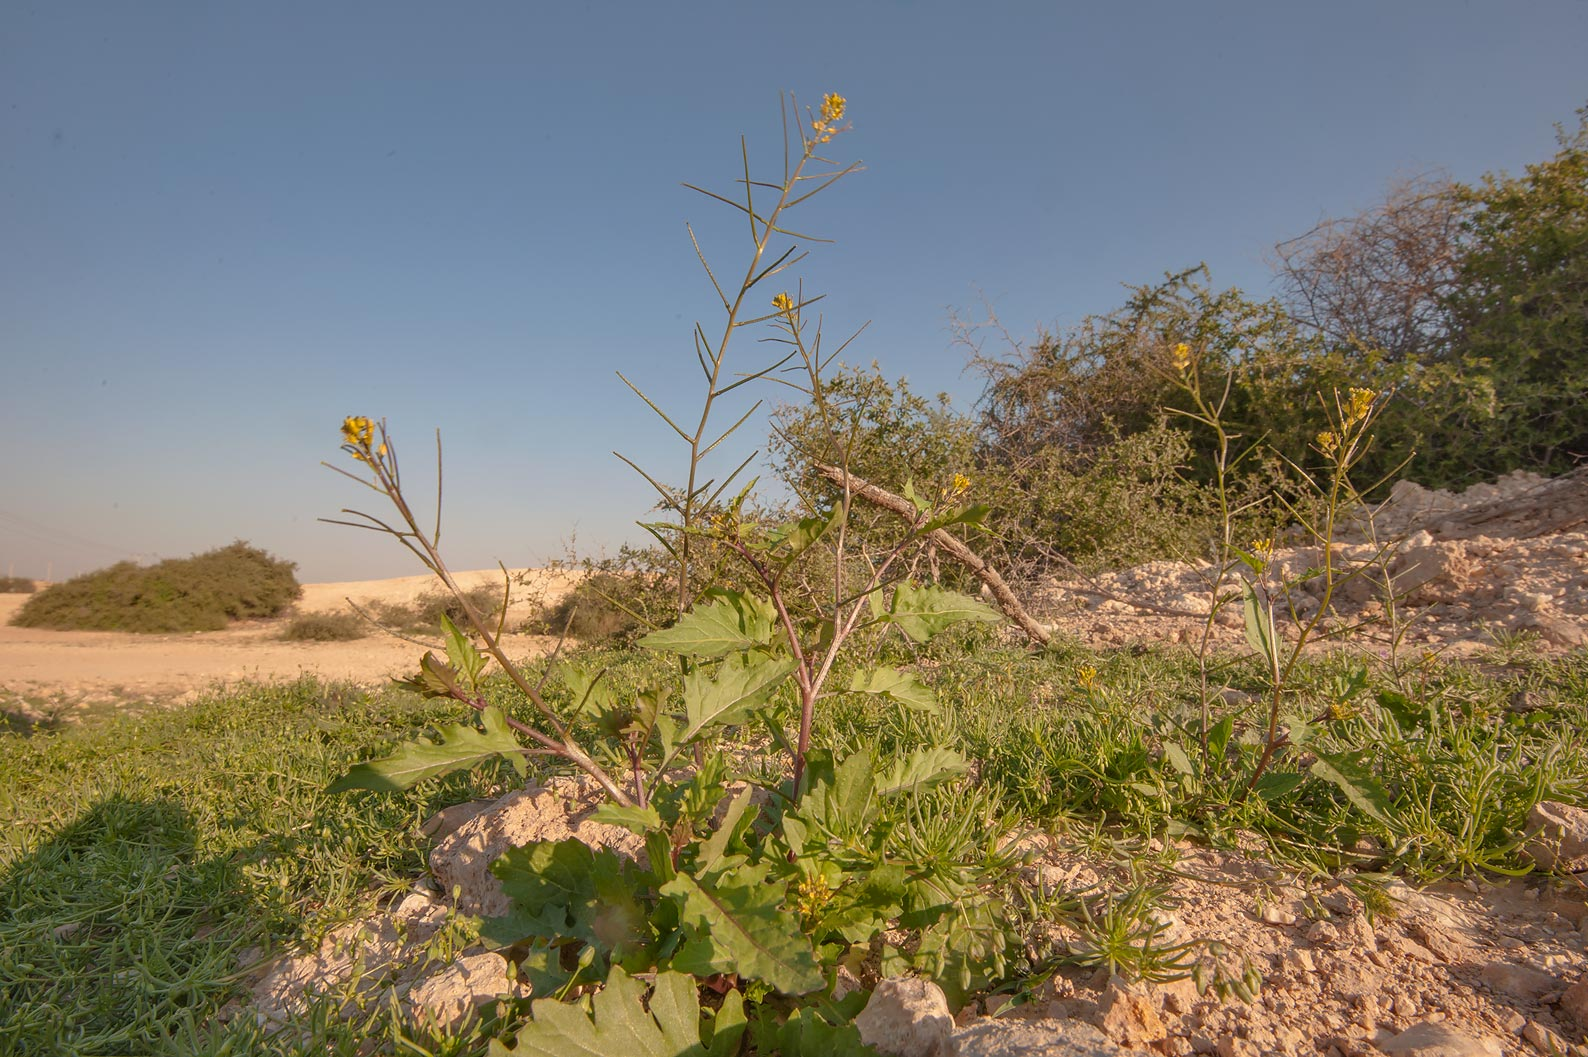 Mediterranean rocket (smooth mustard, Sisymbrium...of Al Magdah farms. Northern Qatar